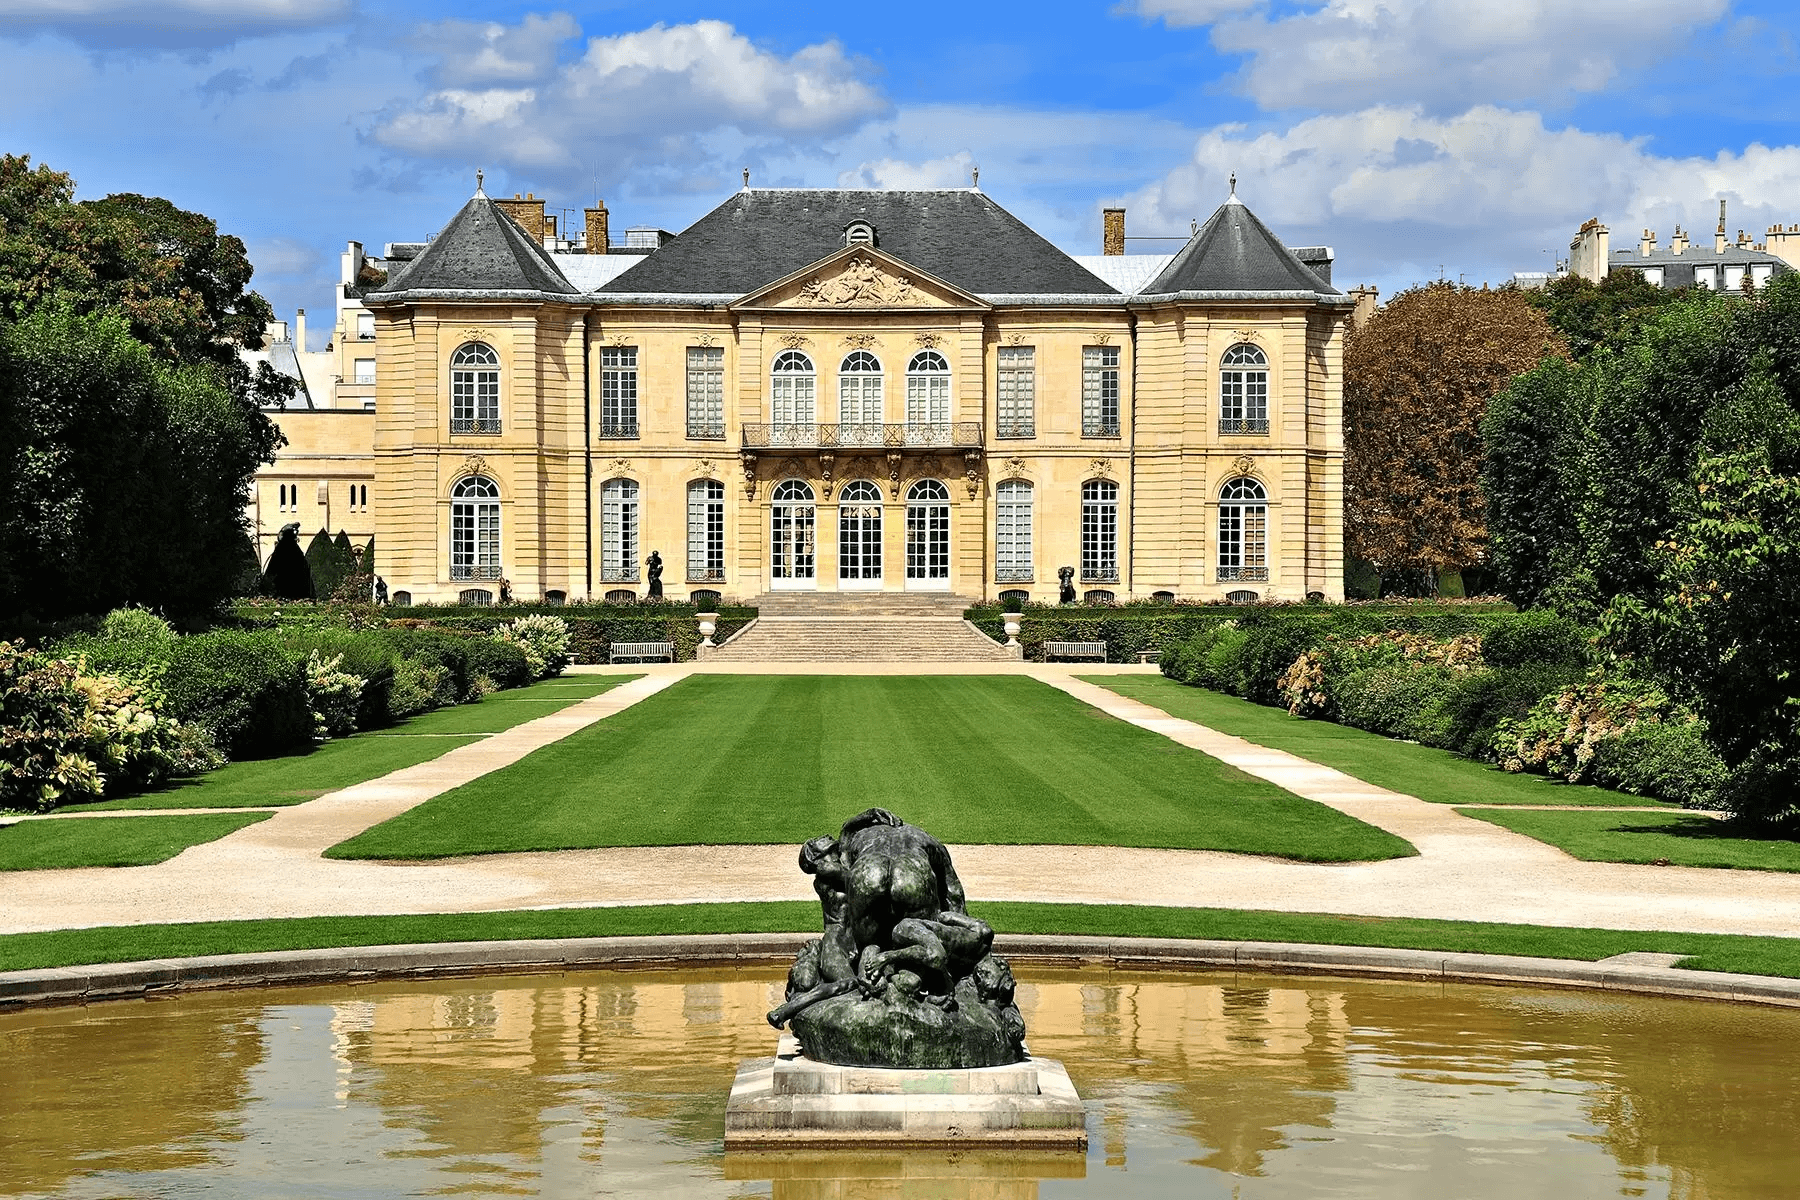 2 Visit the Musee Rodin